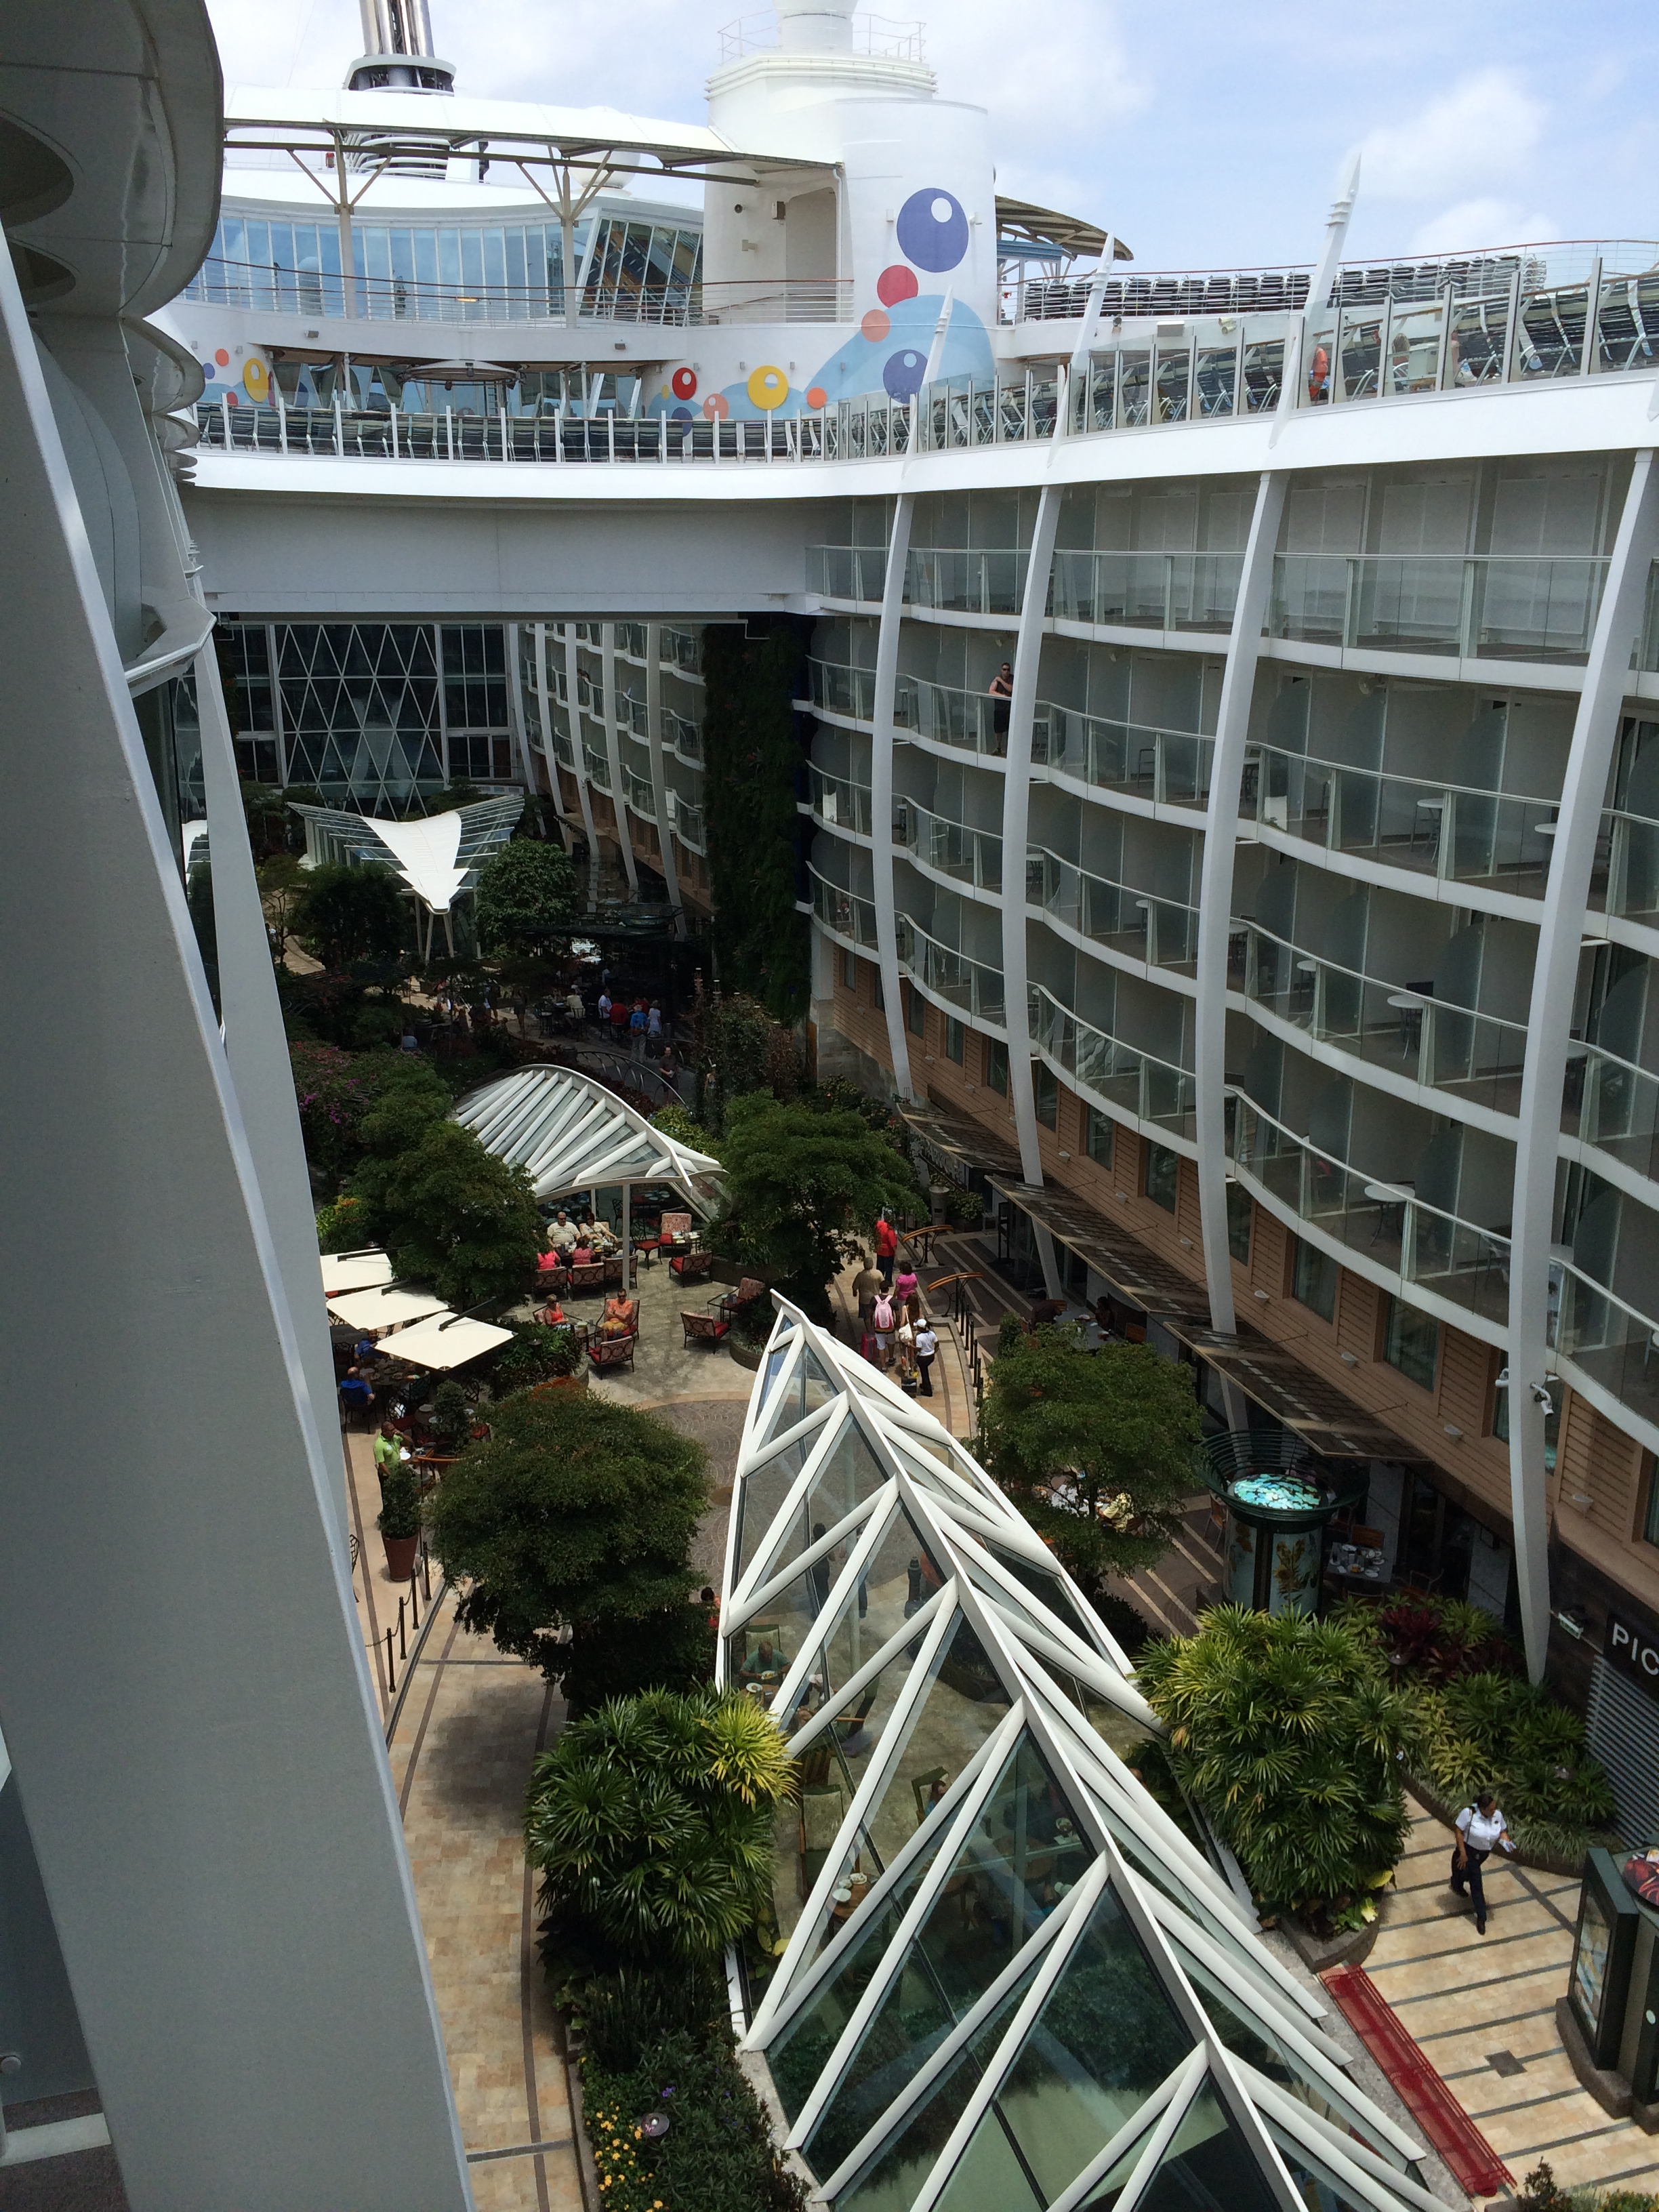 Royal caribbean oasis of the seas cruise review for cabin for Balcony view on cruise